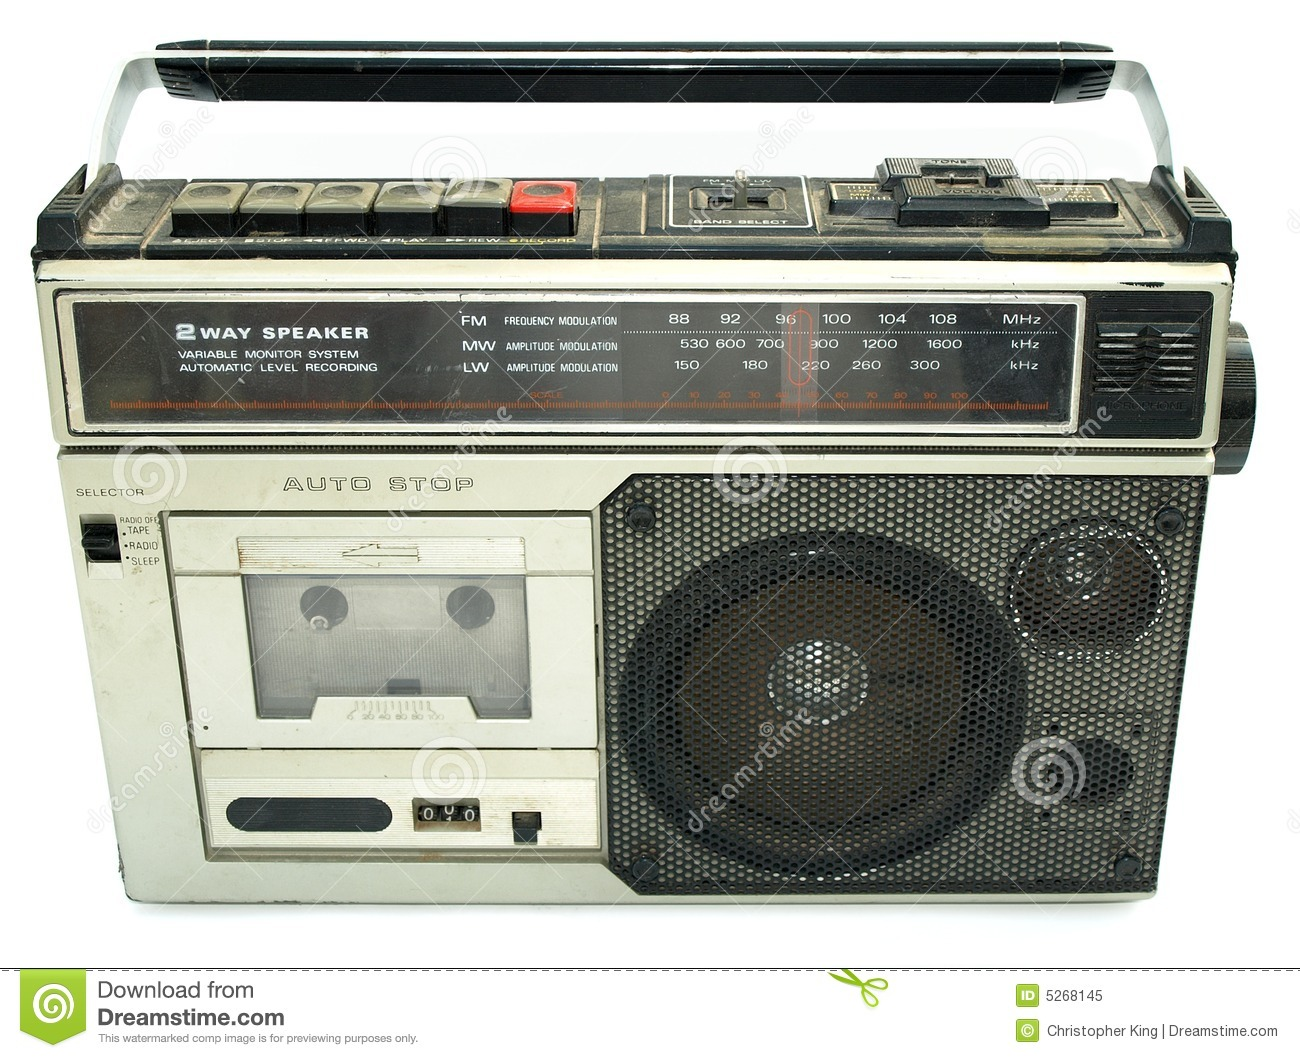 Teac Sl D930 Retro Styled Bluetooth Cd And Radio System furthermore Belling Fmr2080s Retro Microwave 800w 20l Cream further 331624671616 additionally Soundmaster Nr545dab Retro Fm Dab Radio Bluetooth Cd Cassette Record Player Turntable 26668 P as well Pyle Home PICL48B iPOD iPhone Radio Receiver with. on retro radio cd player